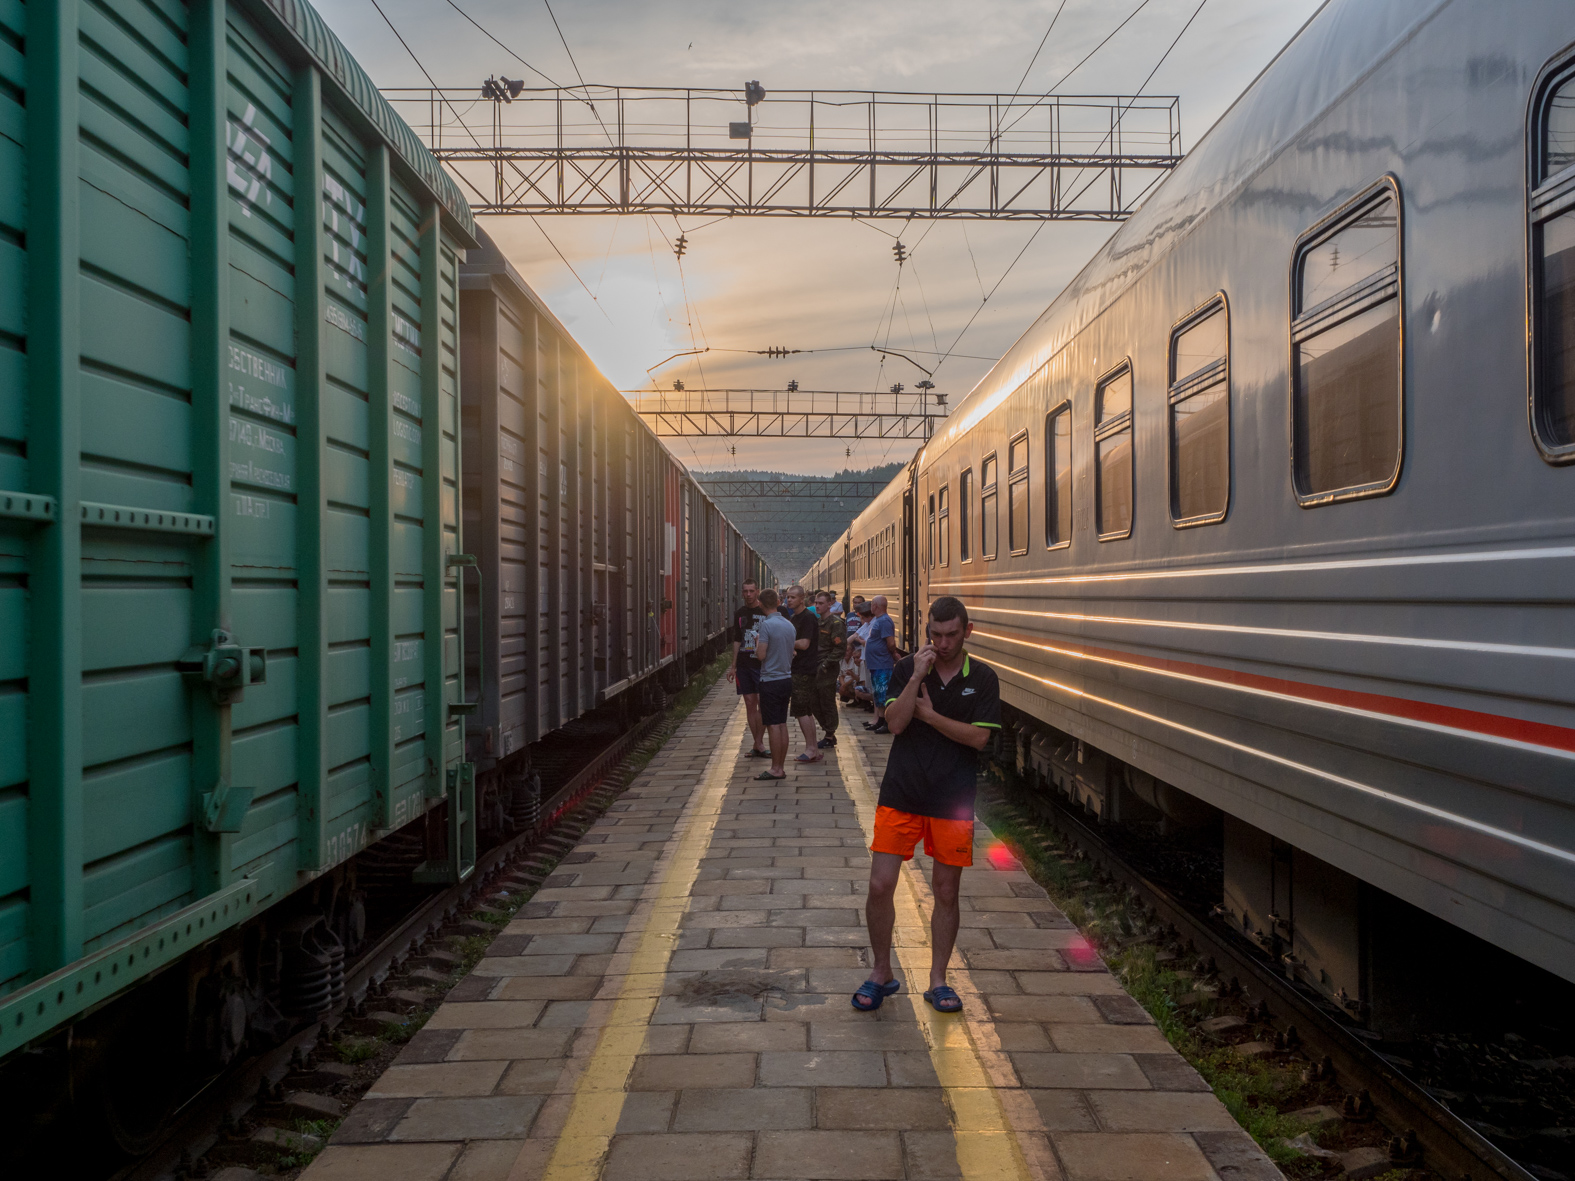 Passengers socialise and stretch their legs during a scheduled stop on the Trans-Siberian Railway from Moscow-Vladivostok. Spanning a length of 9,289km, ist' the longest uninterrupted single country train journey in the world. It has connected Moscow with Vladivostok since 1916, and is still being expanded. It was built between 1891 and 1916 under the supervision of Russian government ministers personally appointed by Tsar Alexander III and his son, the Tsarevich Nicholas (later Tsar Nicholas II).